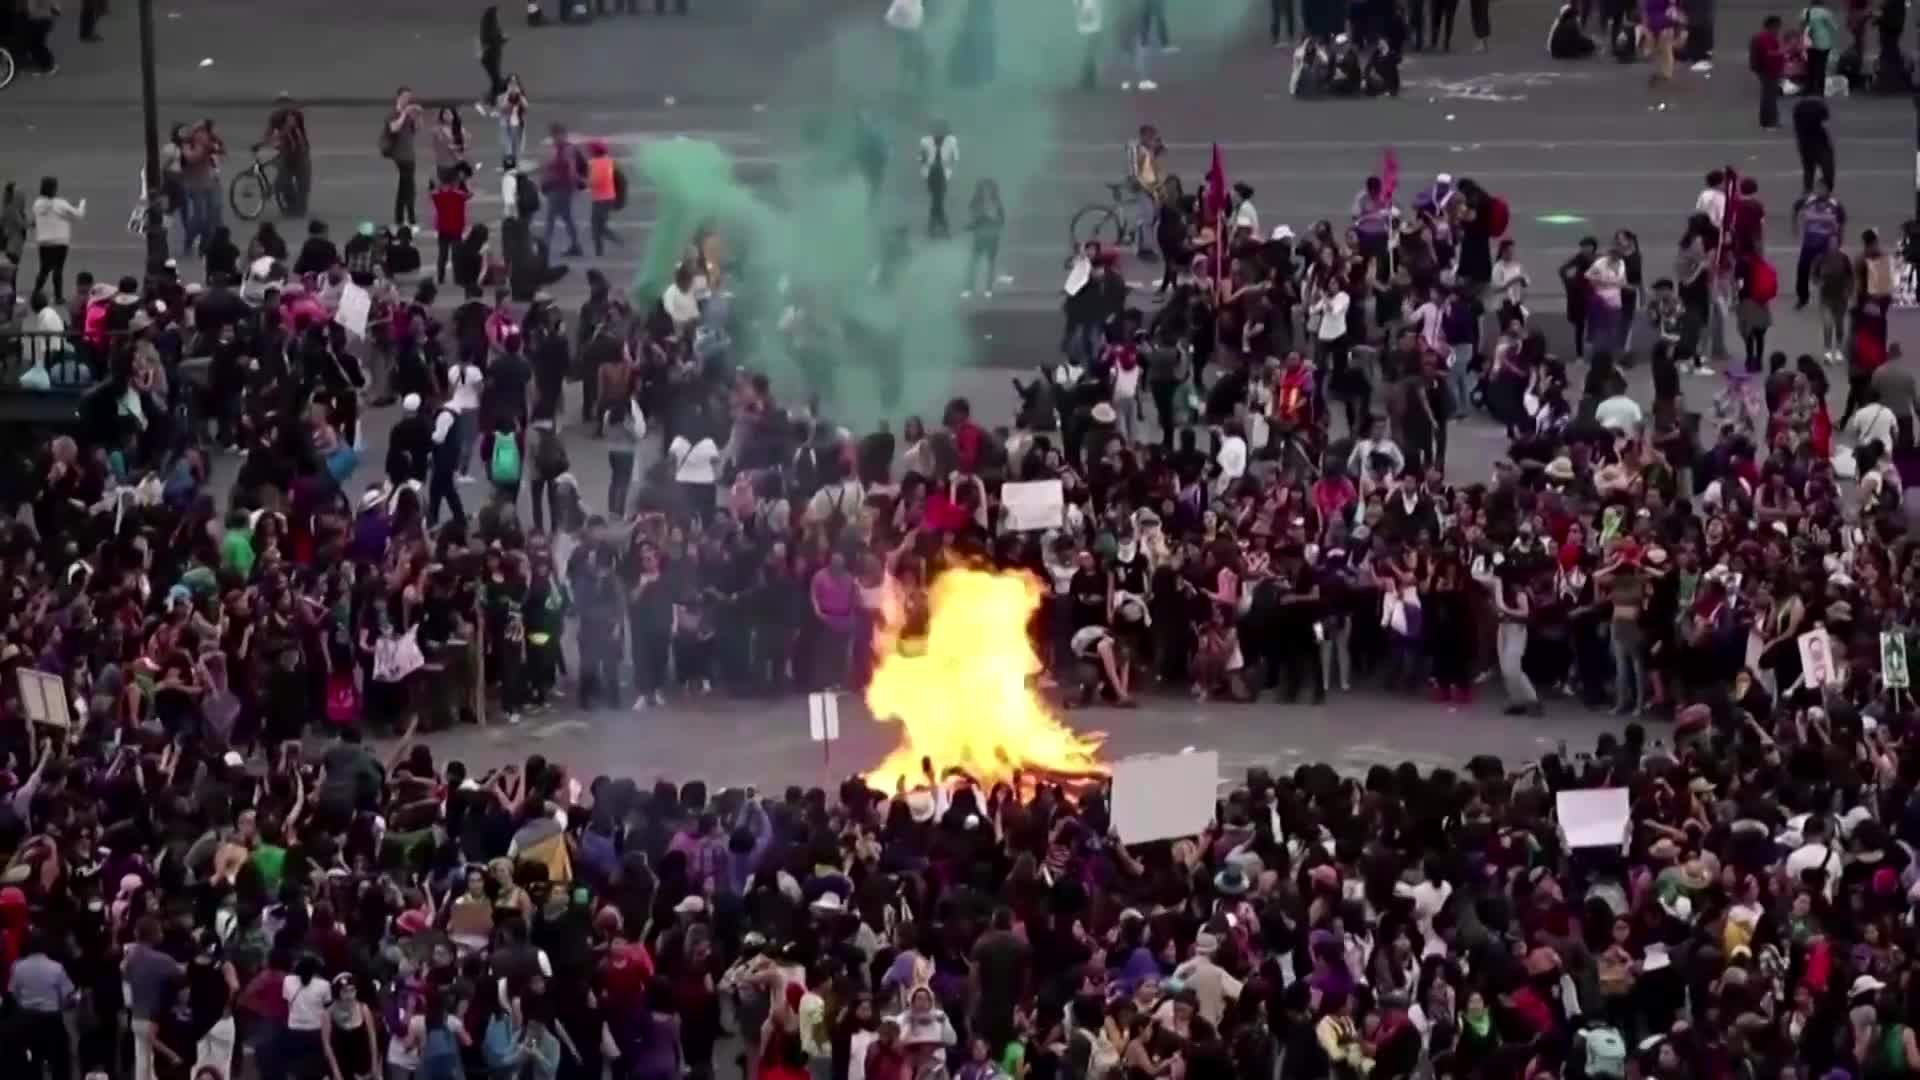 Violent clashes in Mexico City for International Women's Day